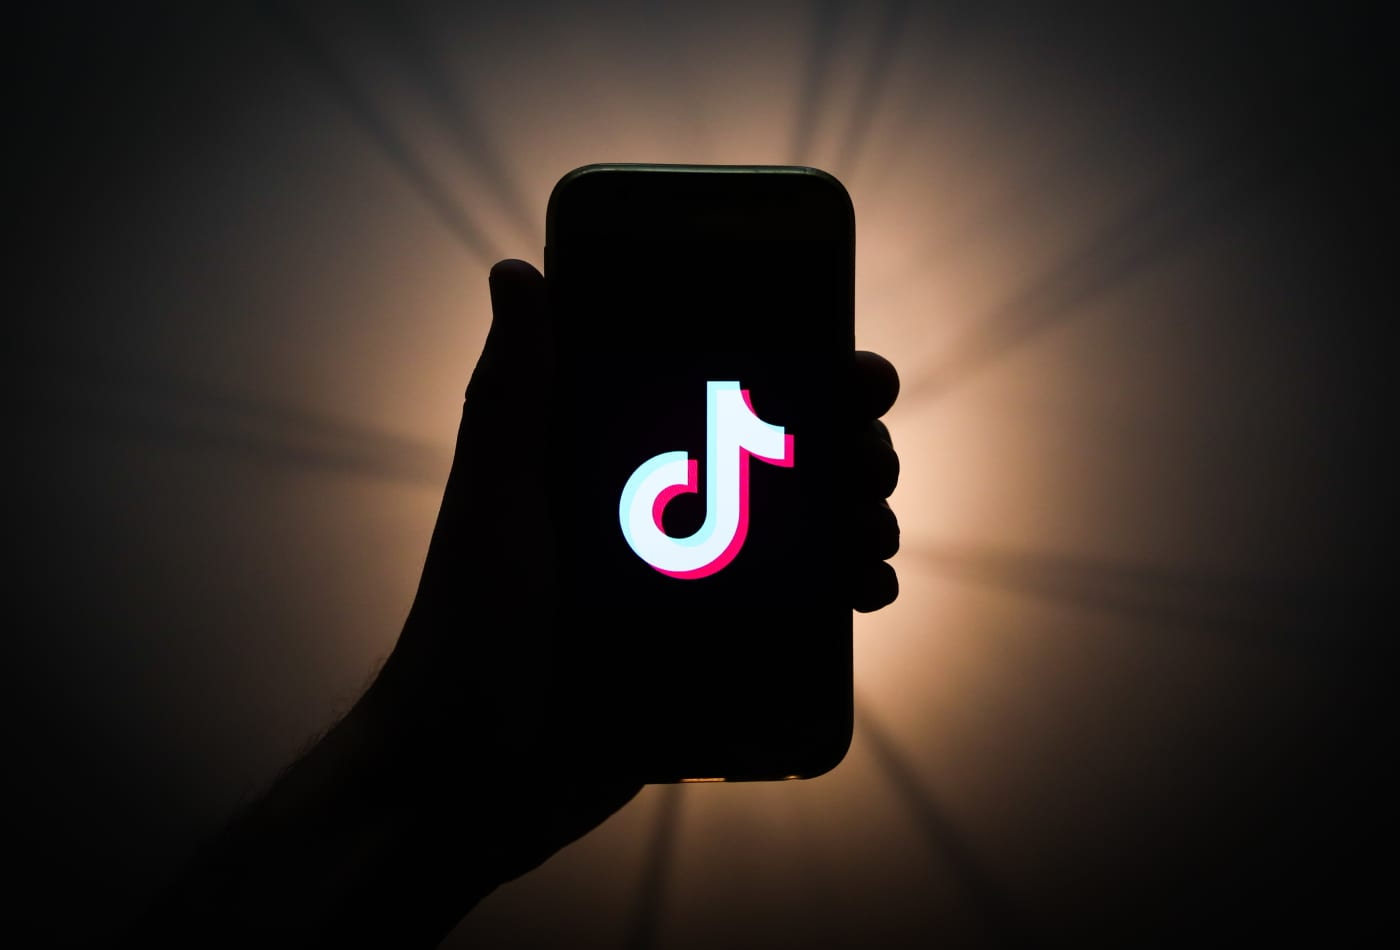 Amazon told employees to delete TikTok from phones, citing security risks, then changed its mind